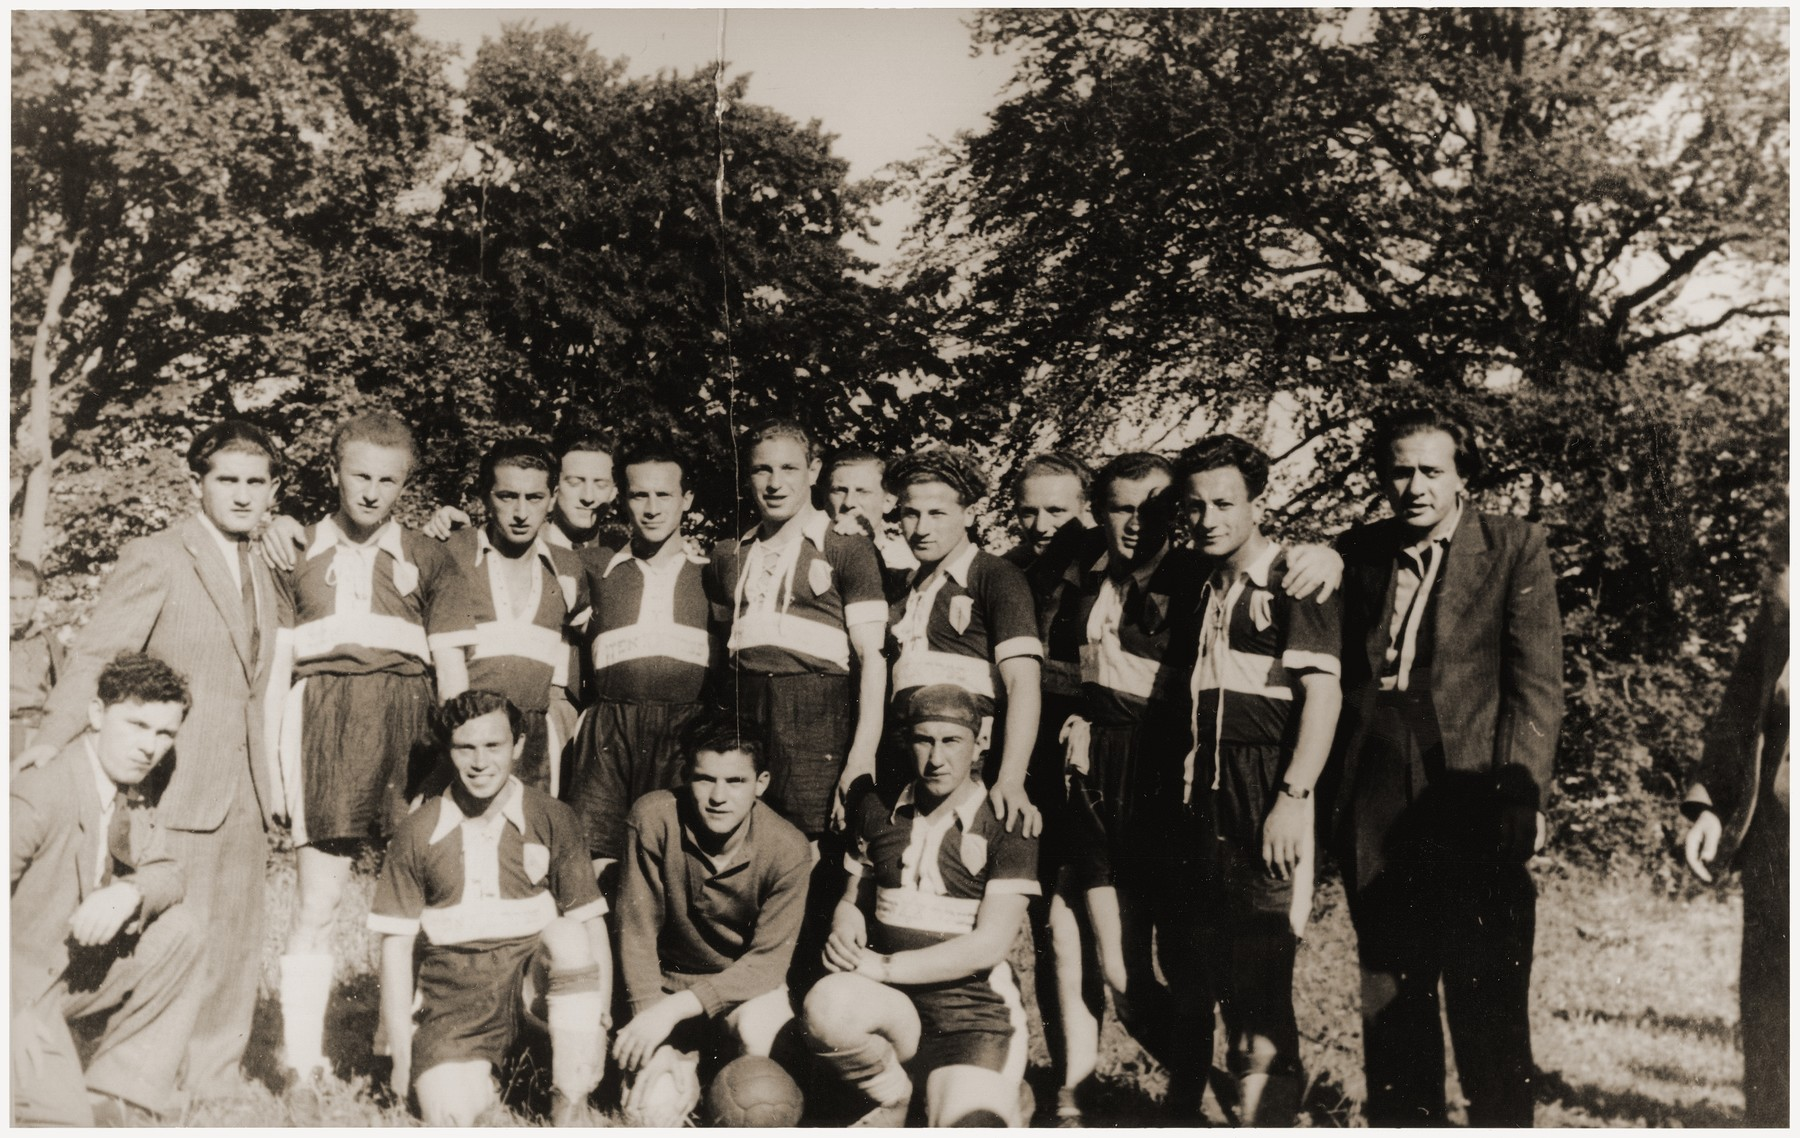 Group portrait of members of a sports team at the Feldafing displaced persons camp.  Among those pictured is Salik Schuckatowiz (second row, third from the left).